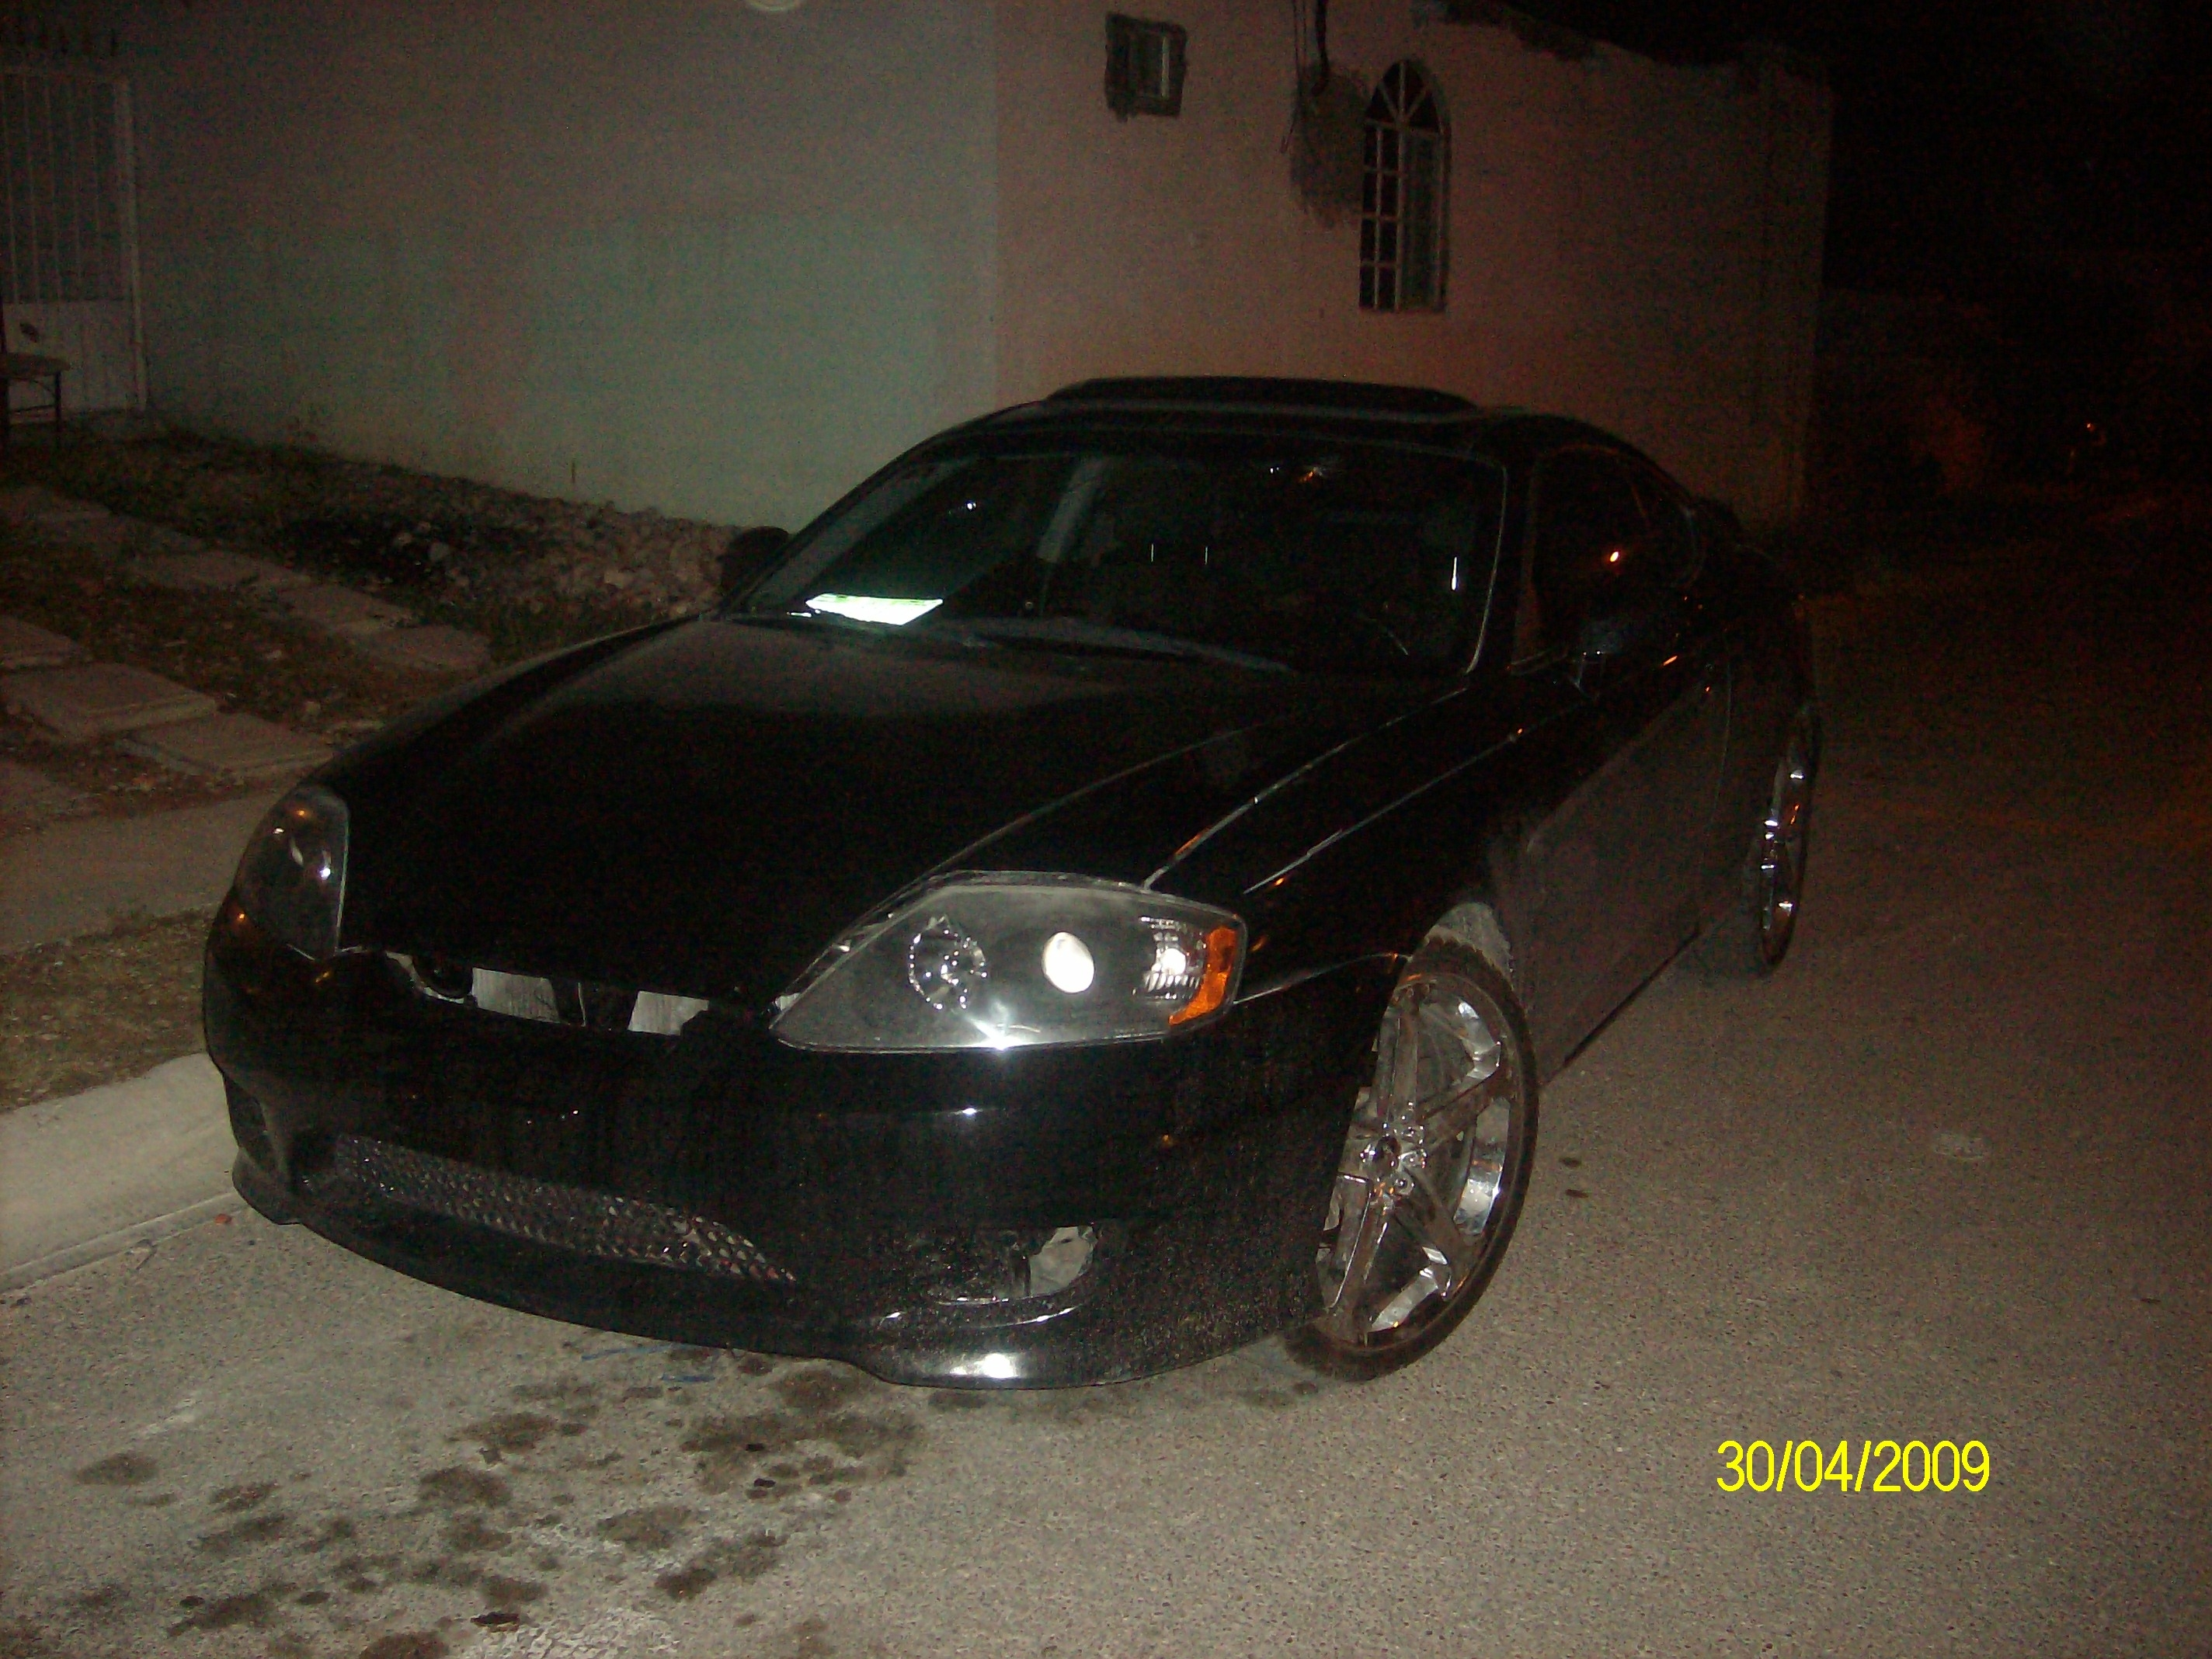 blackstone830 39 s 2006 hyundai tiburon in piedras negras. Black Bedroom Furniture Sets. Home Design Ideas